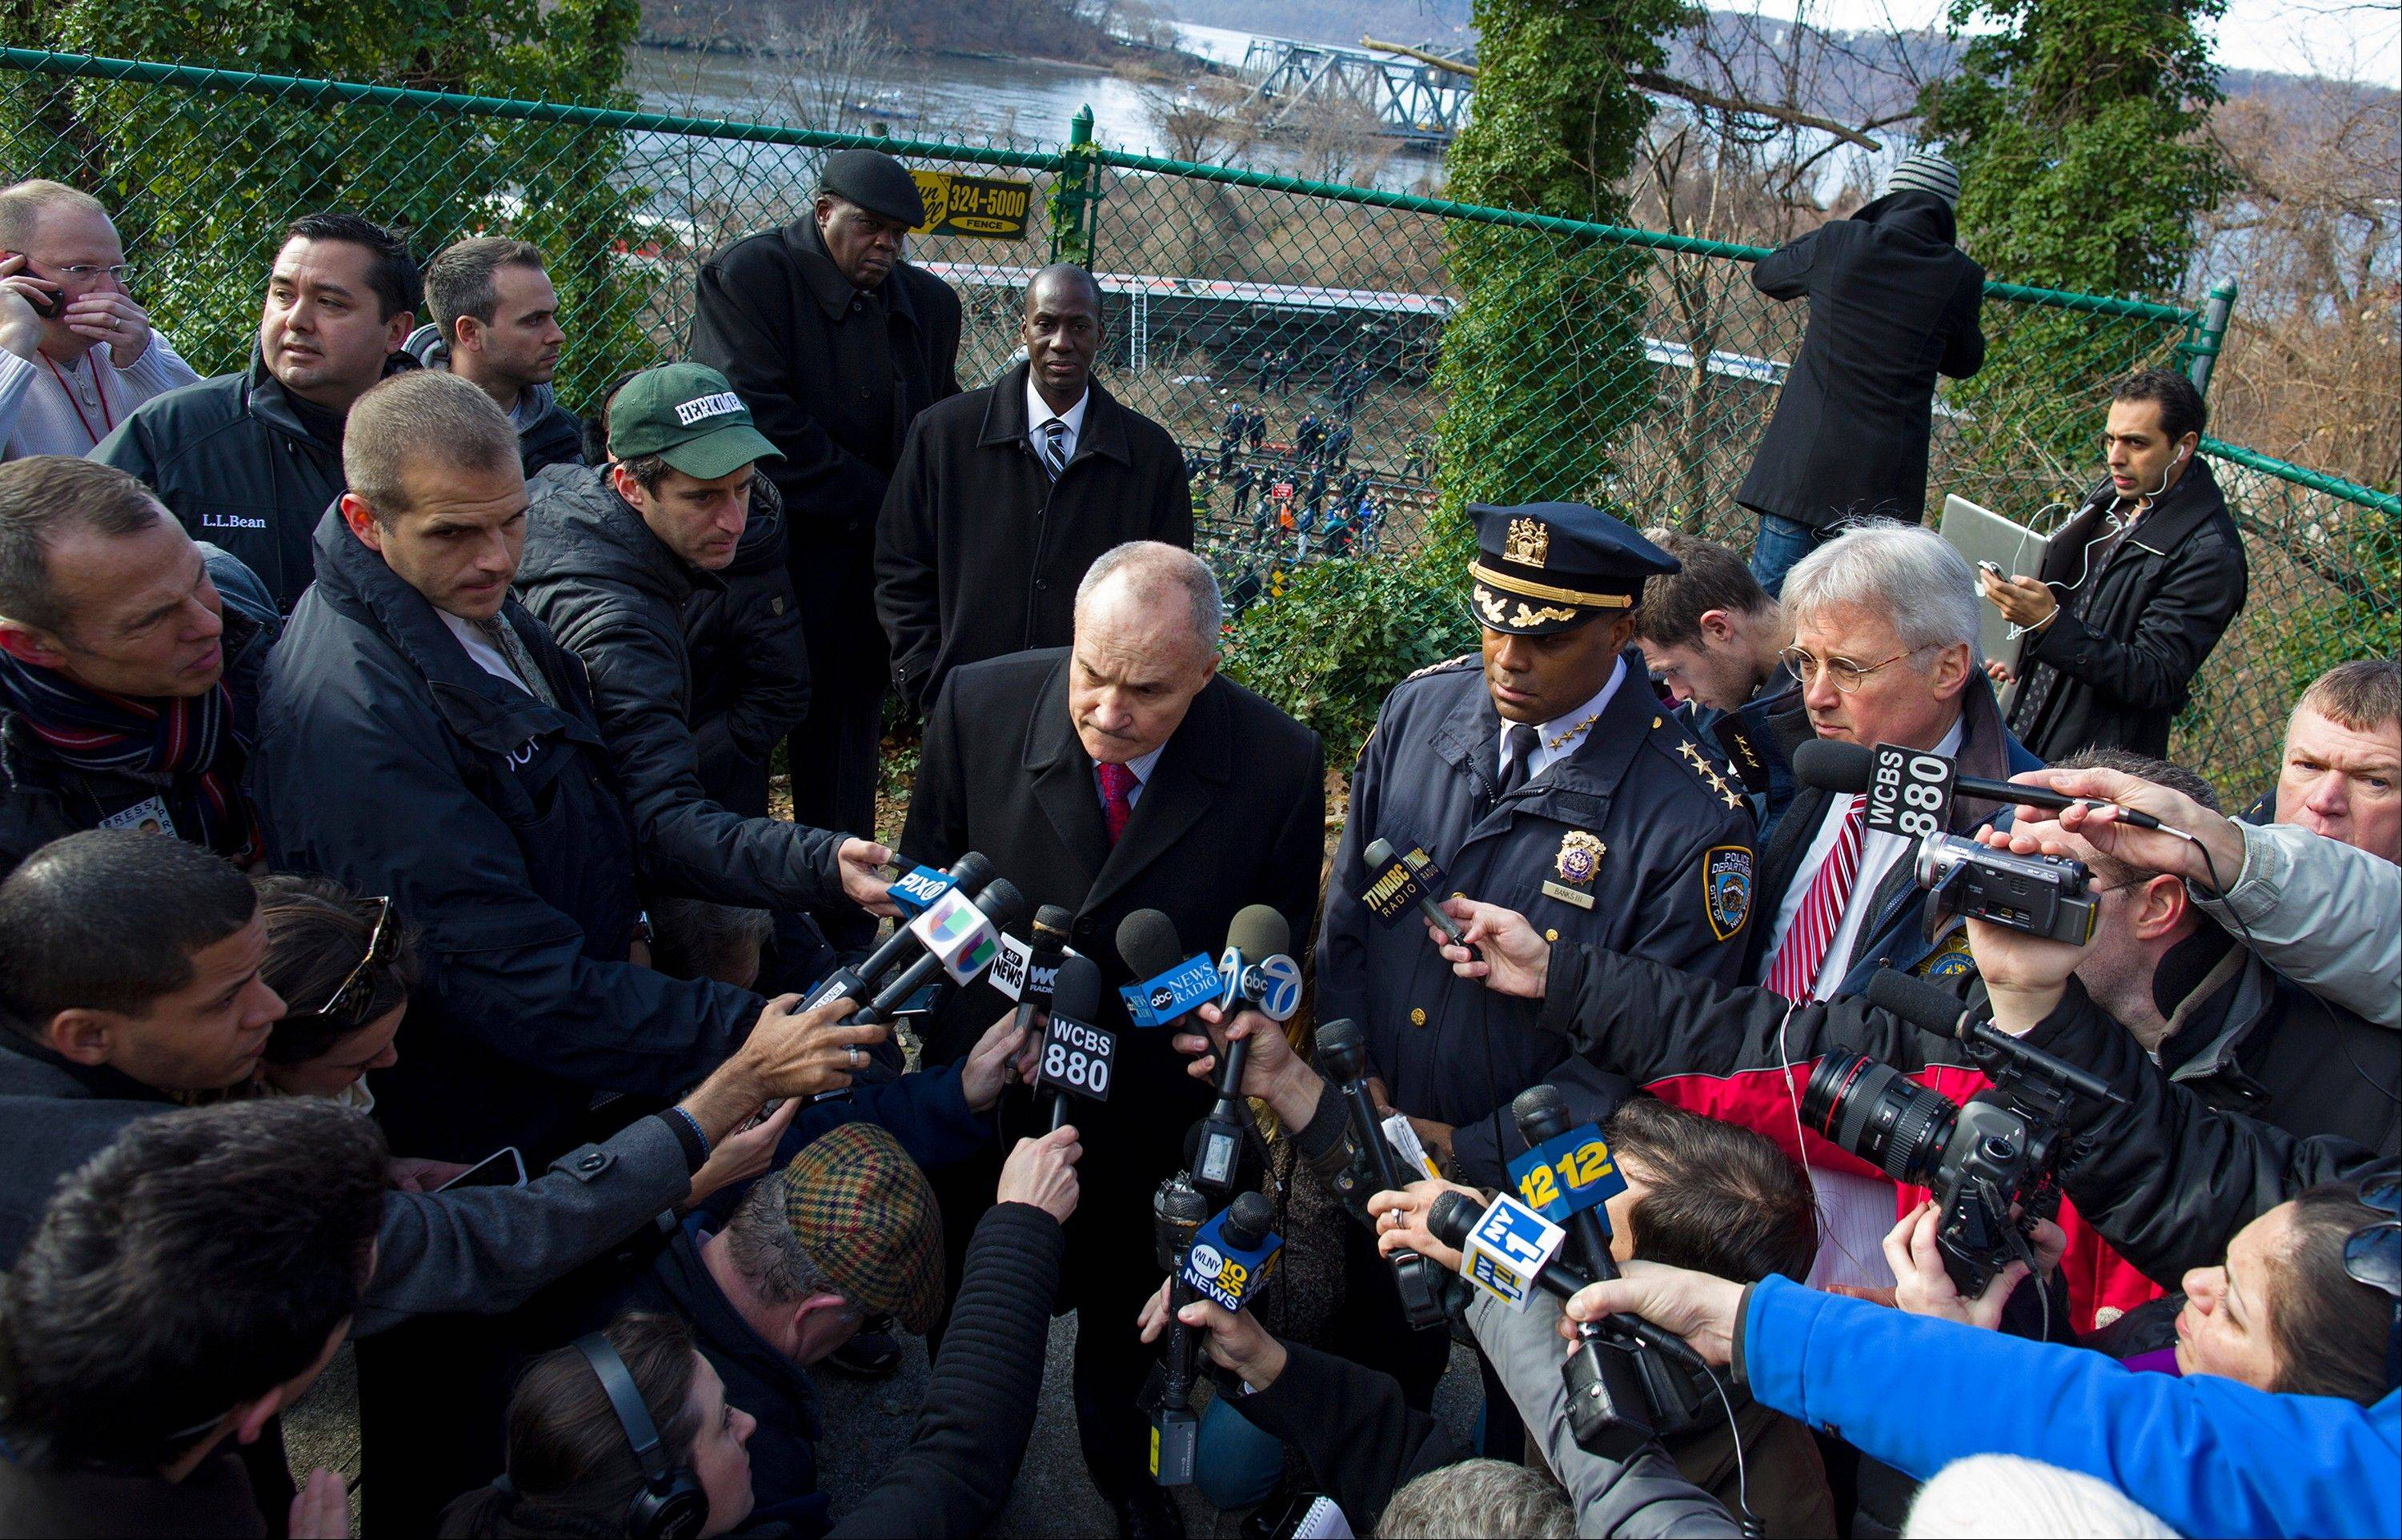 New York Police Commissioner Ray Kelly, center, takes questions from the media after the derailment of a Metro North passenger train, background, in the Bronx borough of New York, Sunday.